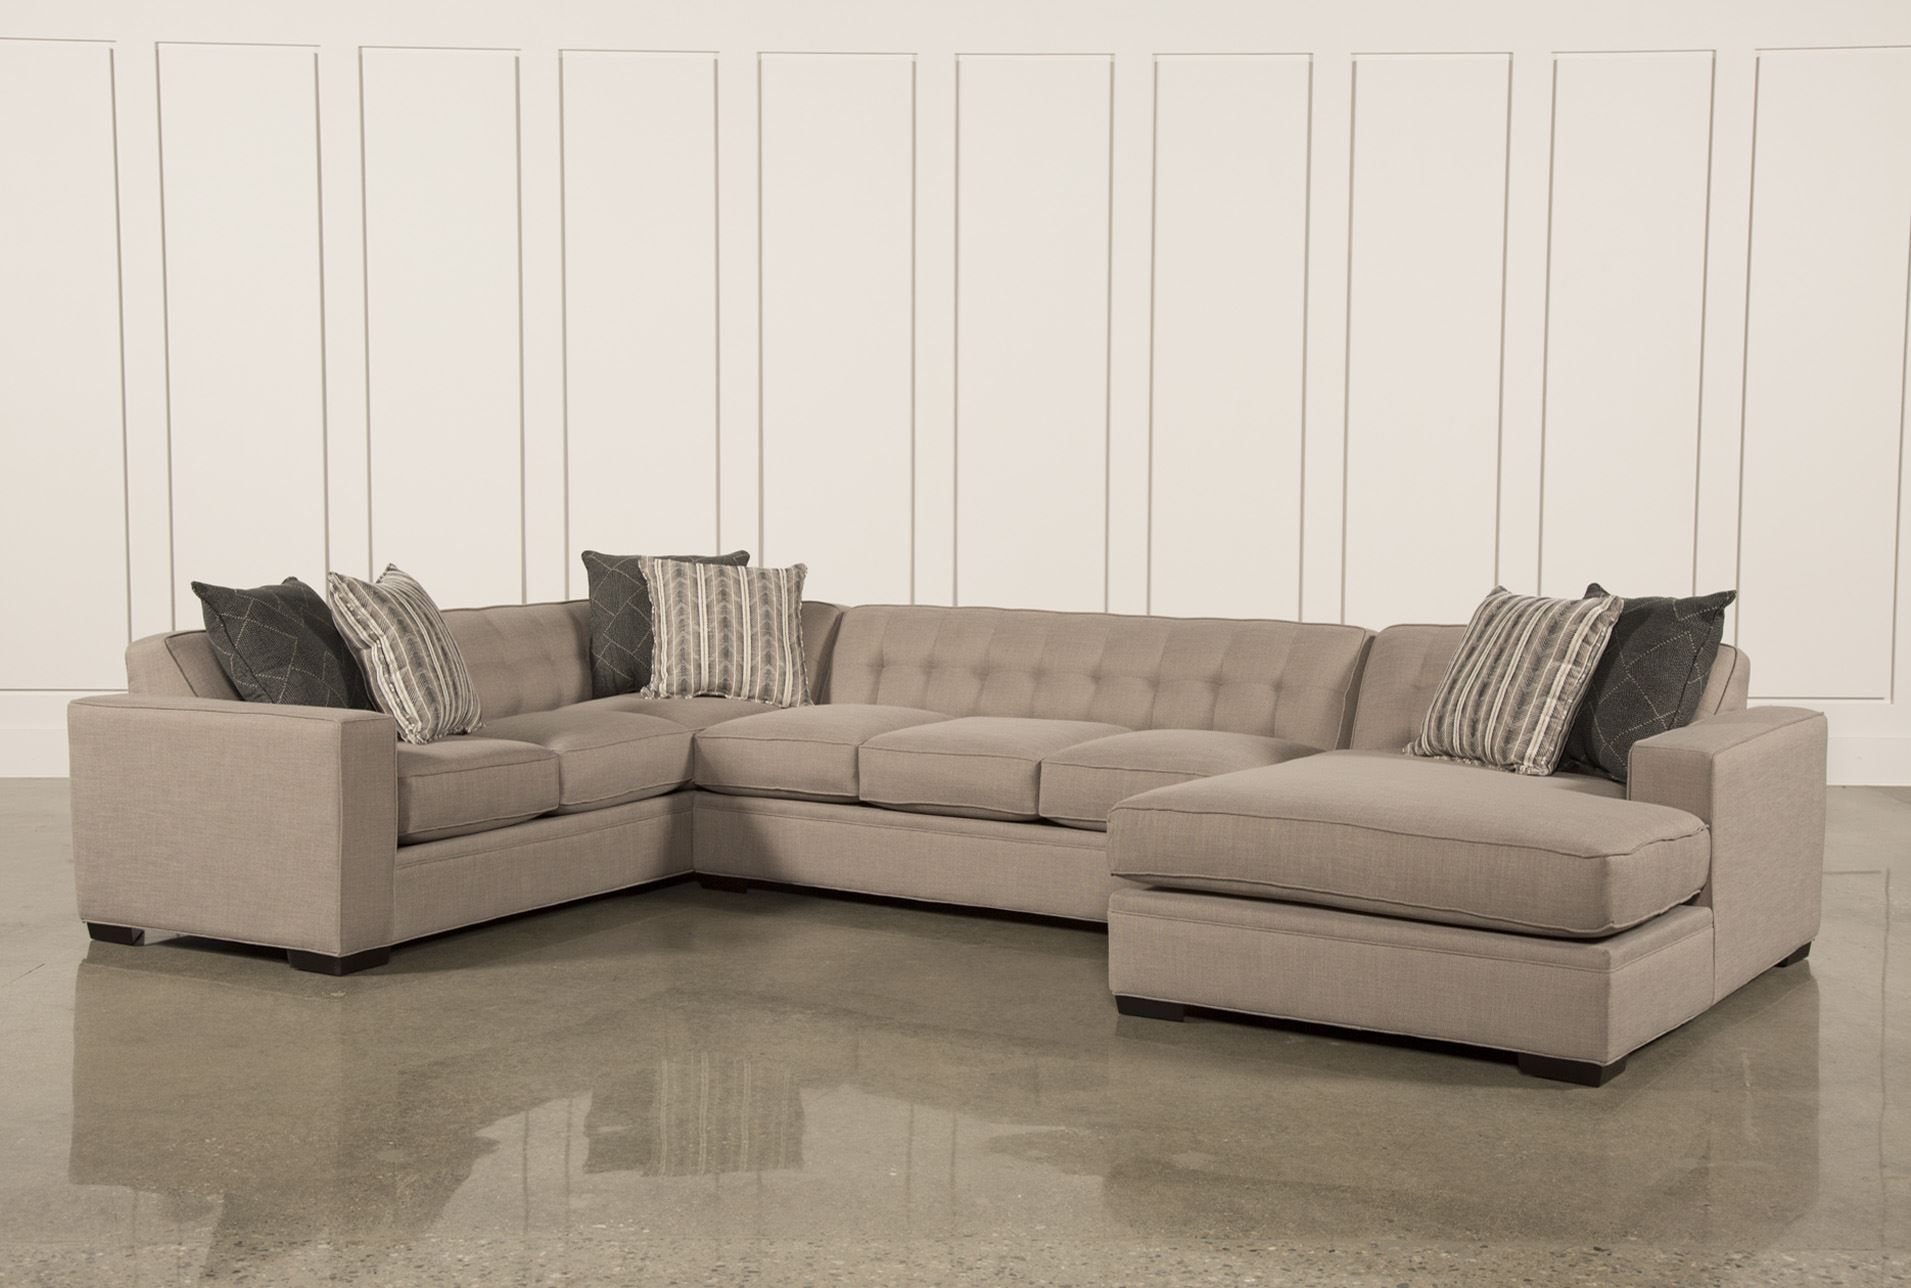 Corbin 3 Piece Sectional W/raf Chaise | New House: Loft | Pinterest within Norfolk Grey 3 Piece Sectionals With Laf Chaise (Image 6 of 30)